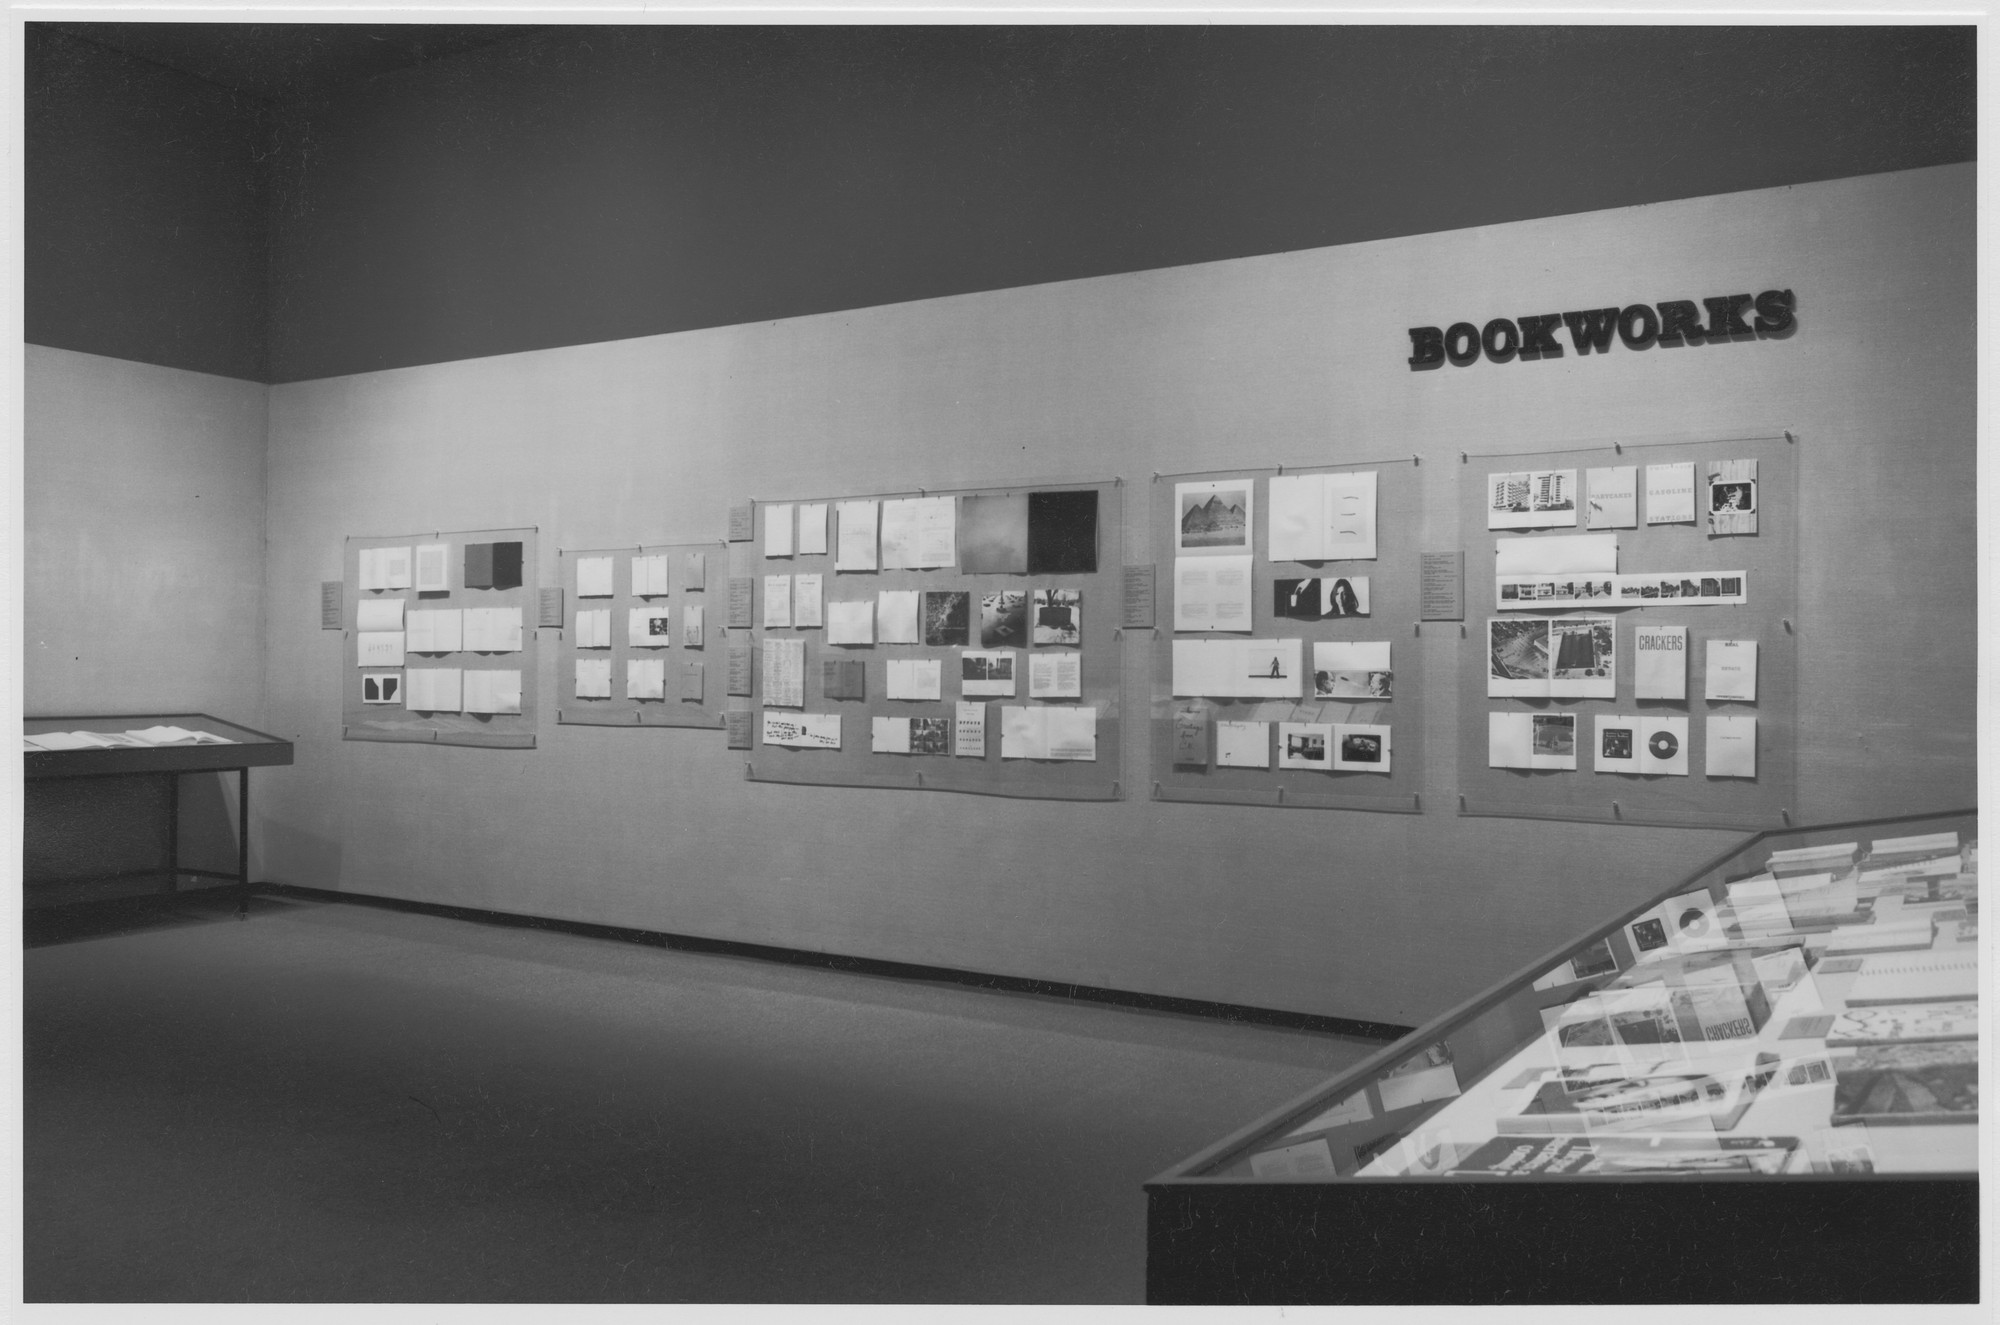 "Installation view of the exhibition, ""Bookworks."" March 17, 1977–May 30, 1977. Photographic Archive. The Museum of Modern Art Archives, New York. IN1169.1. Photograph by Katherine Keller."